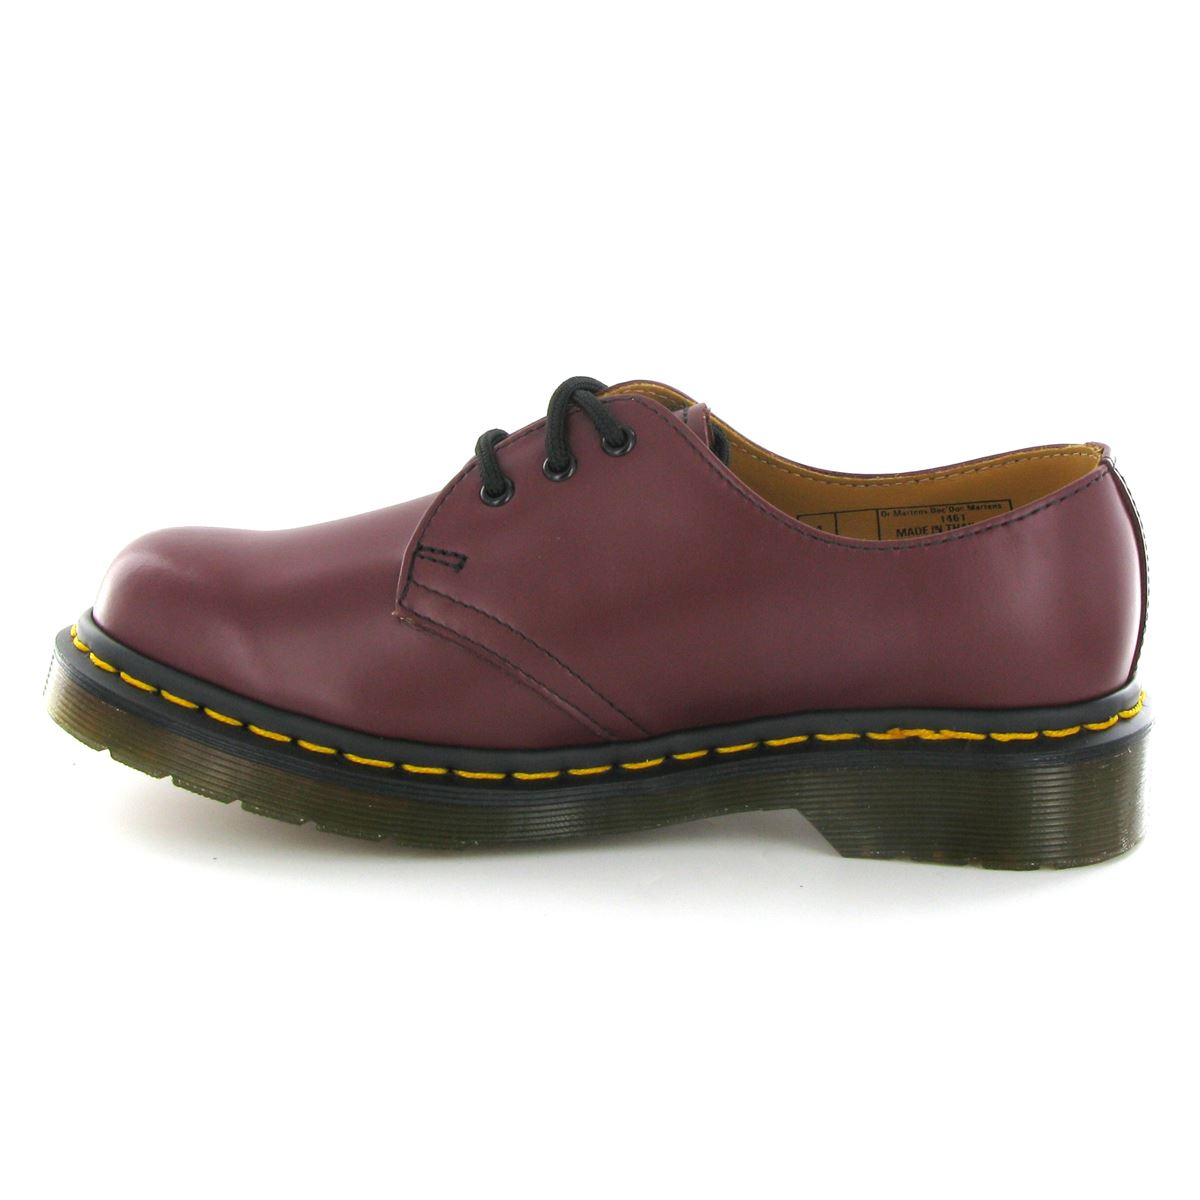 Dr.Martens 1461 3-Eye Leather Womens Shoes